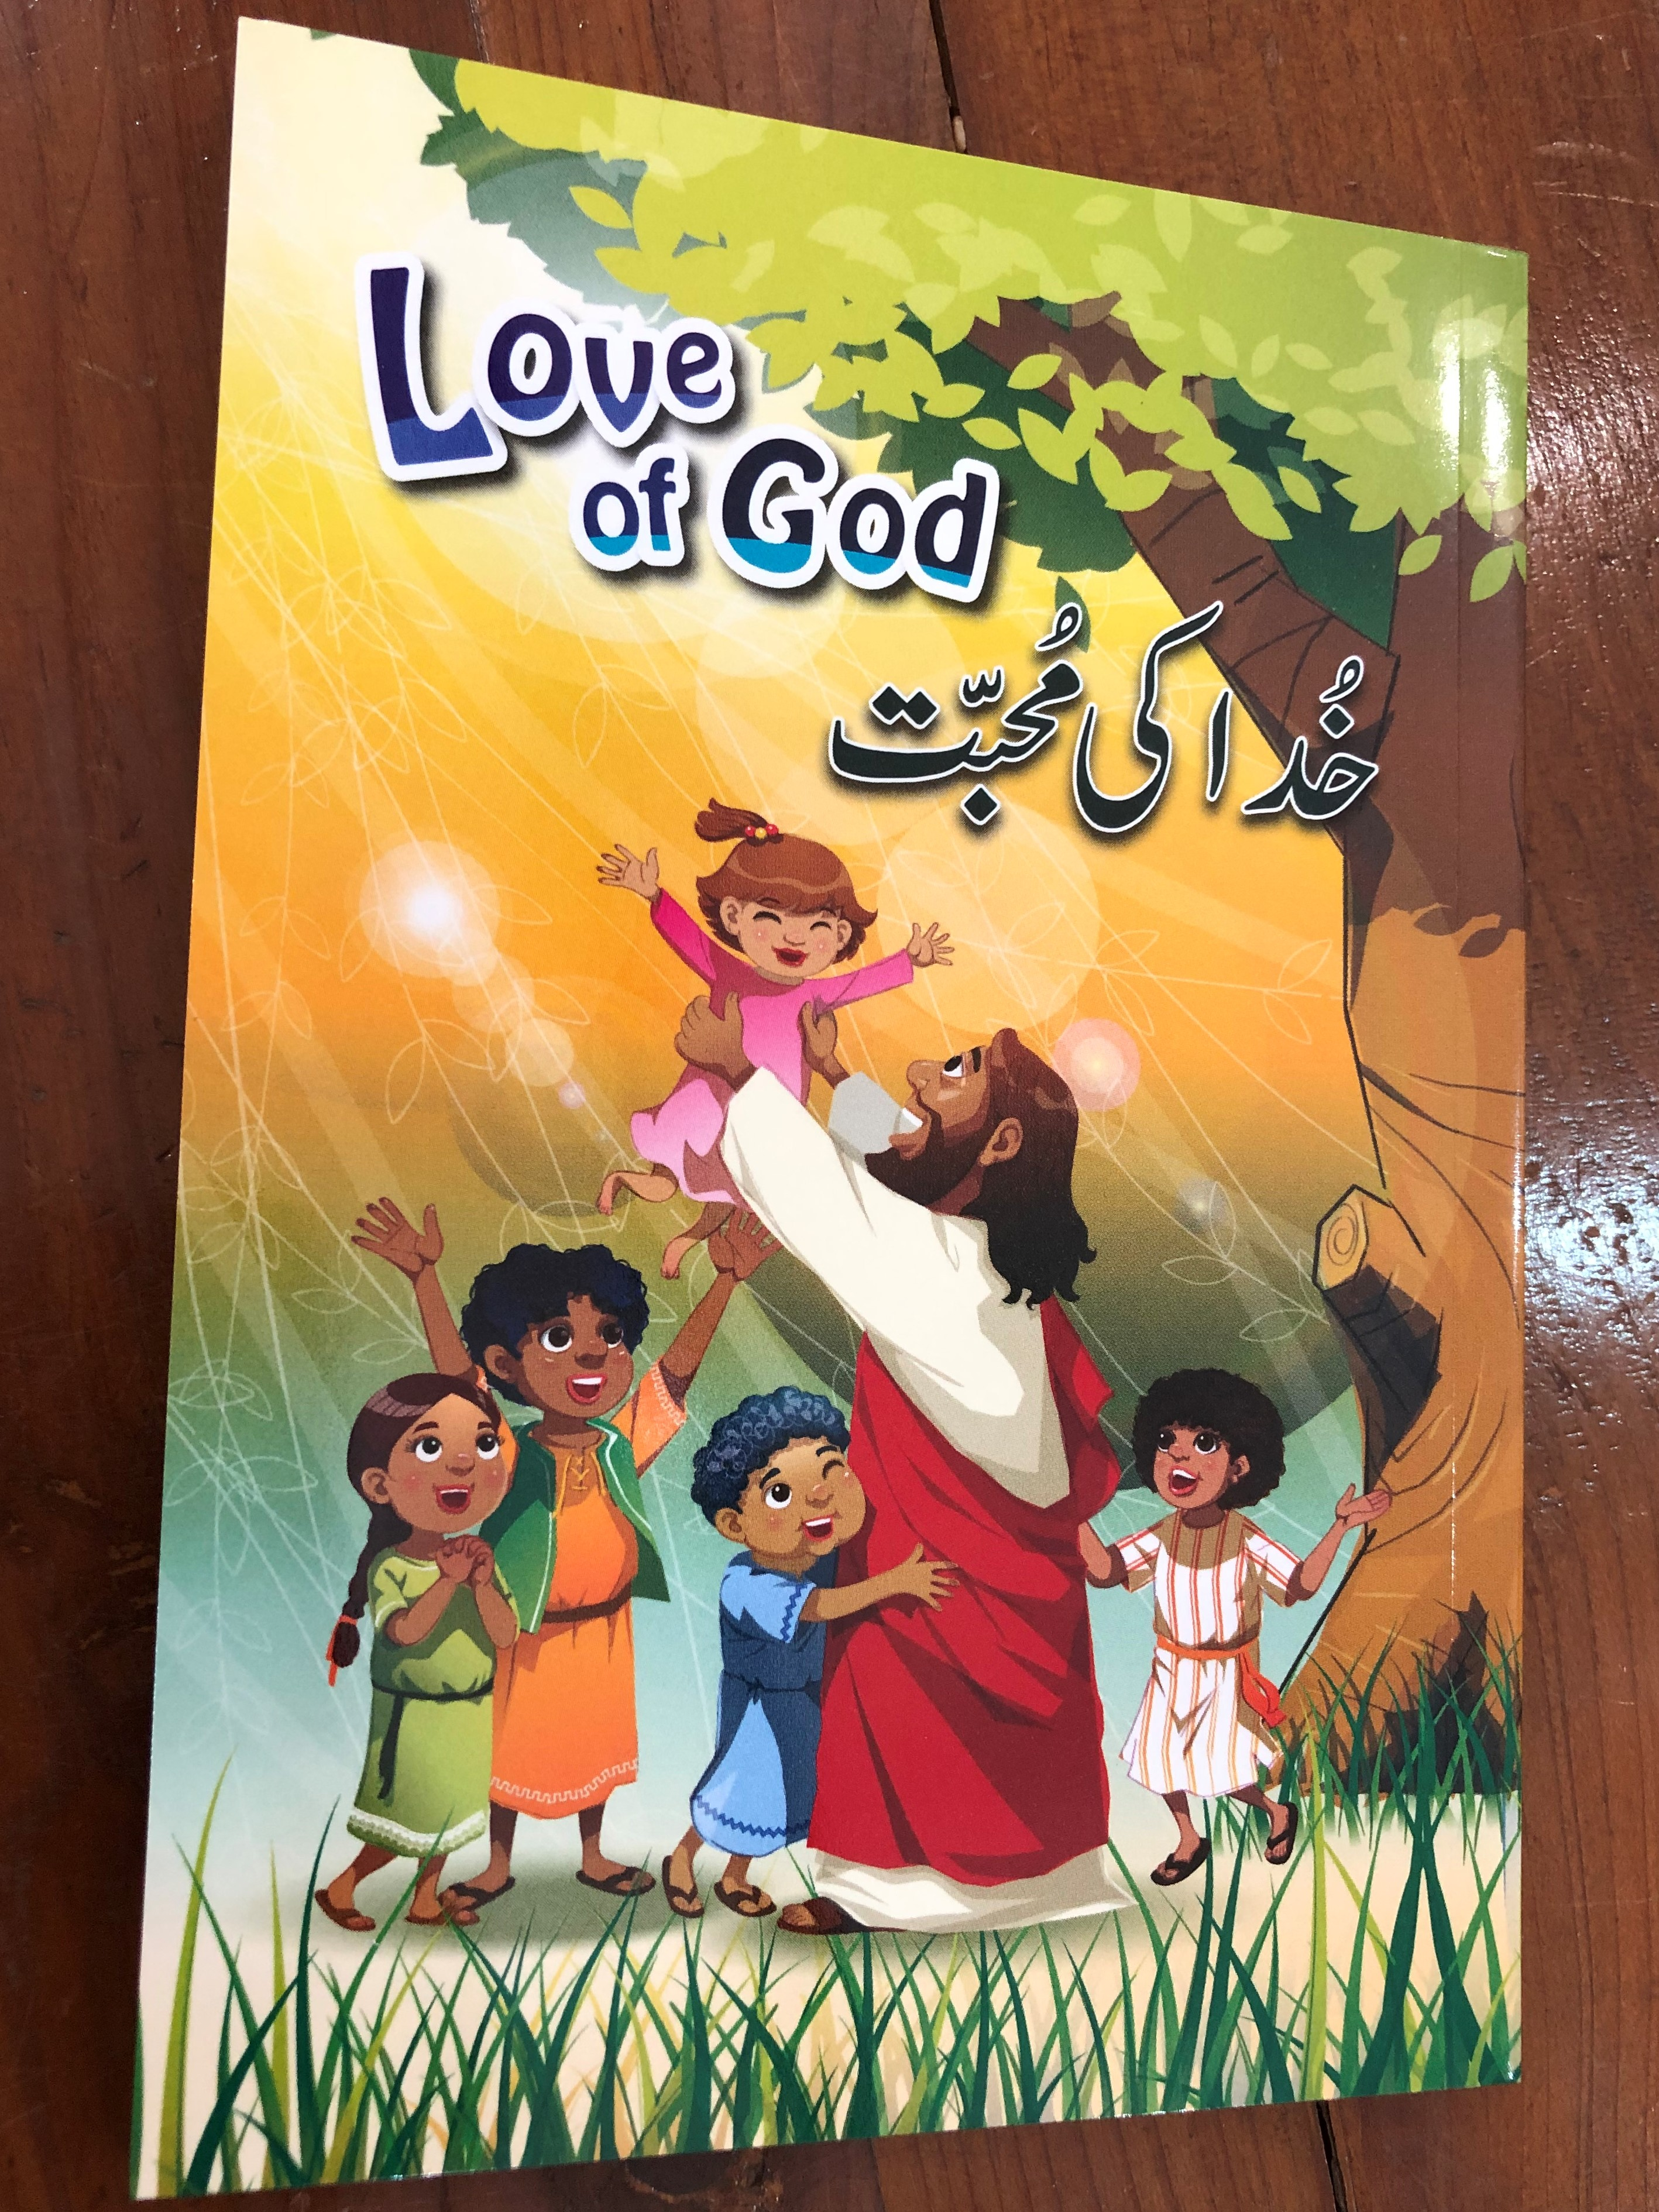 love-of-god-urdu-english-bilingual-edition-korean-bible-society-2018-paperback-70-interesting-stories-from-the-bible-the-best-gift-to-our-children-love-of-god-1-.jpg